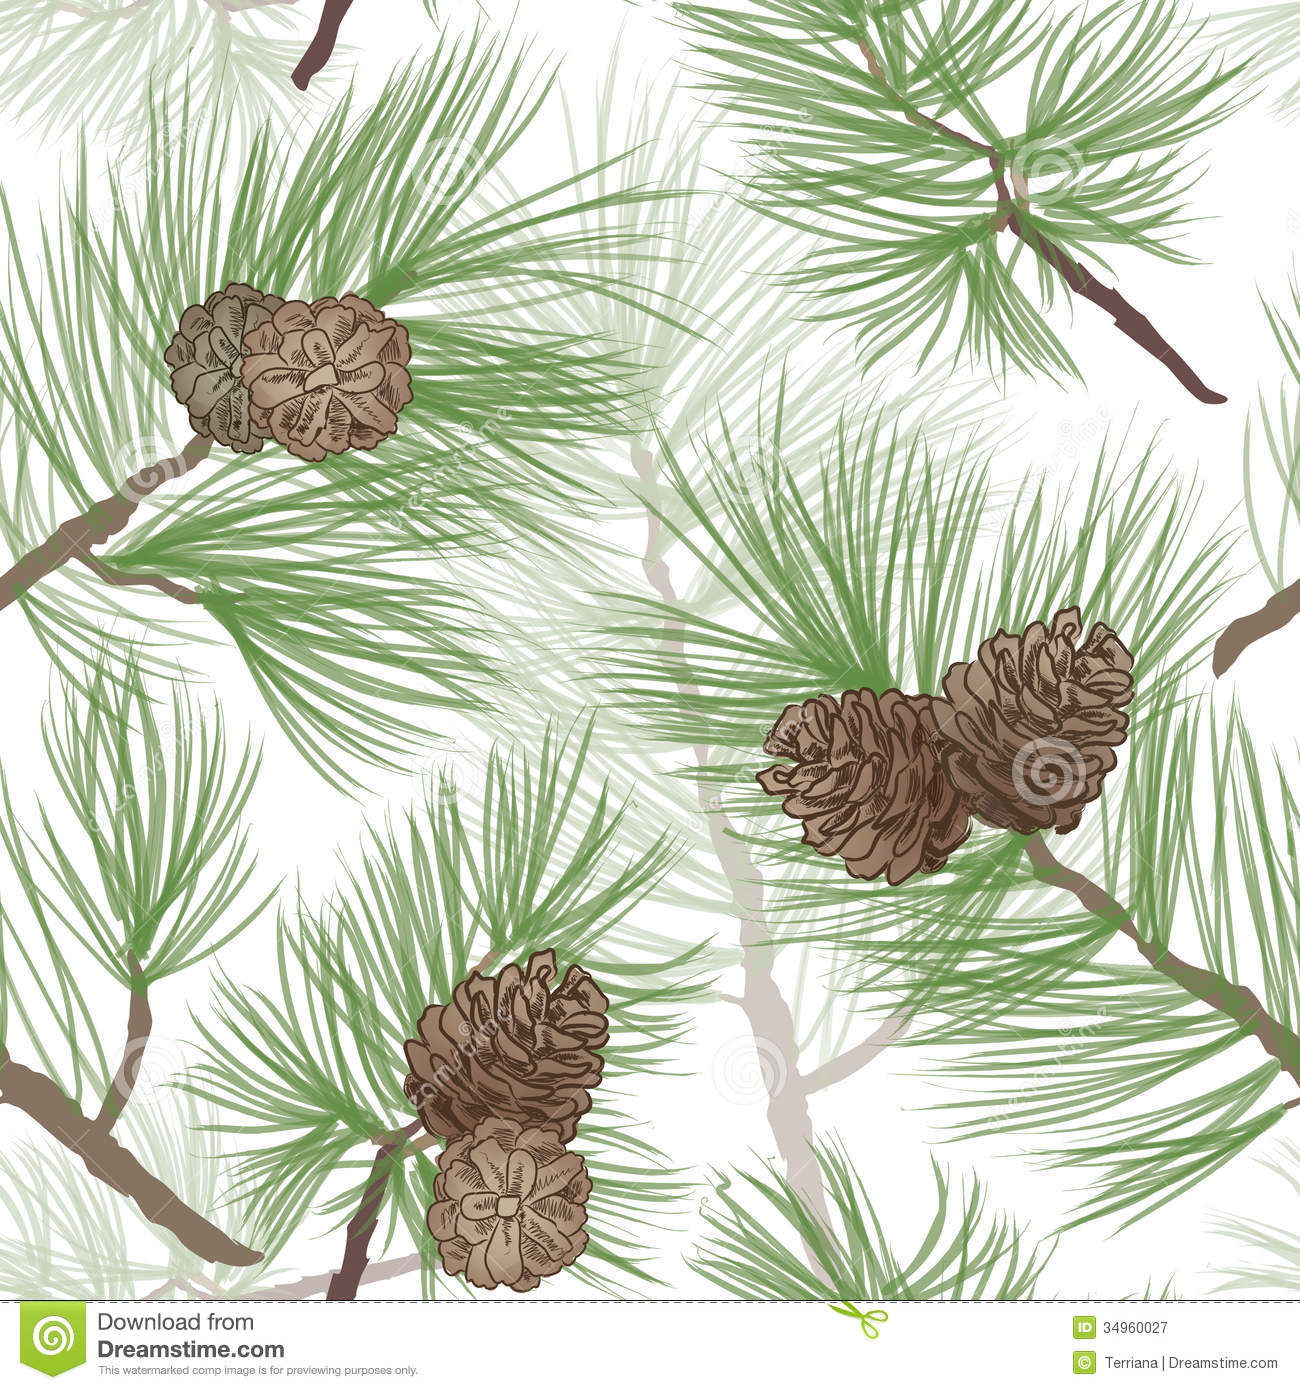 Seamless pine needle texture viewing gallery